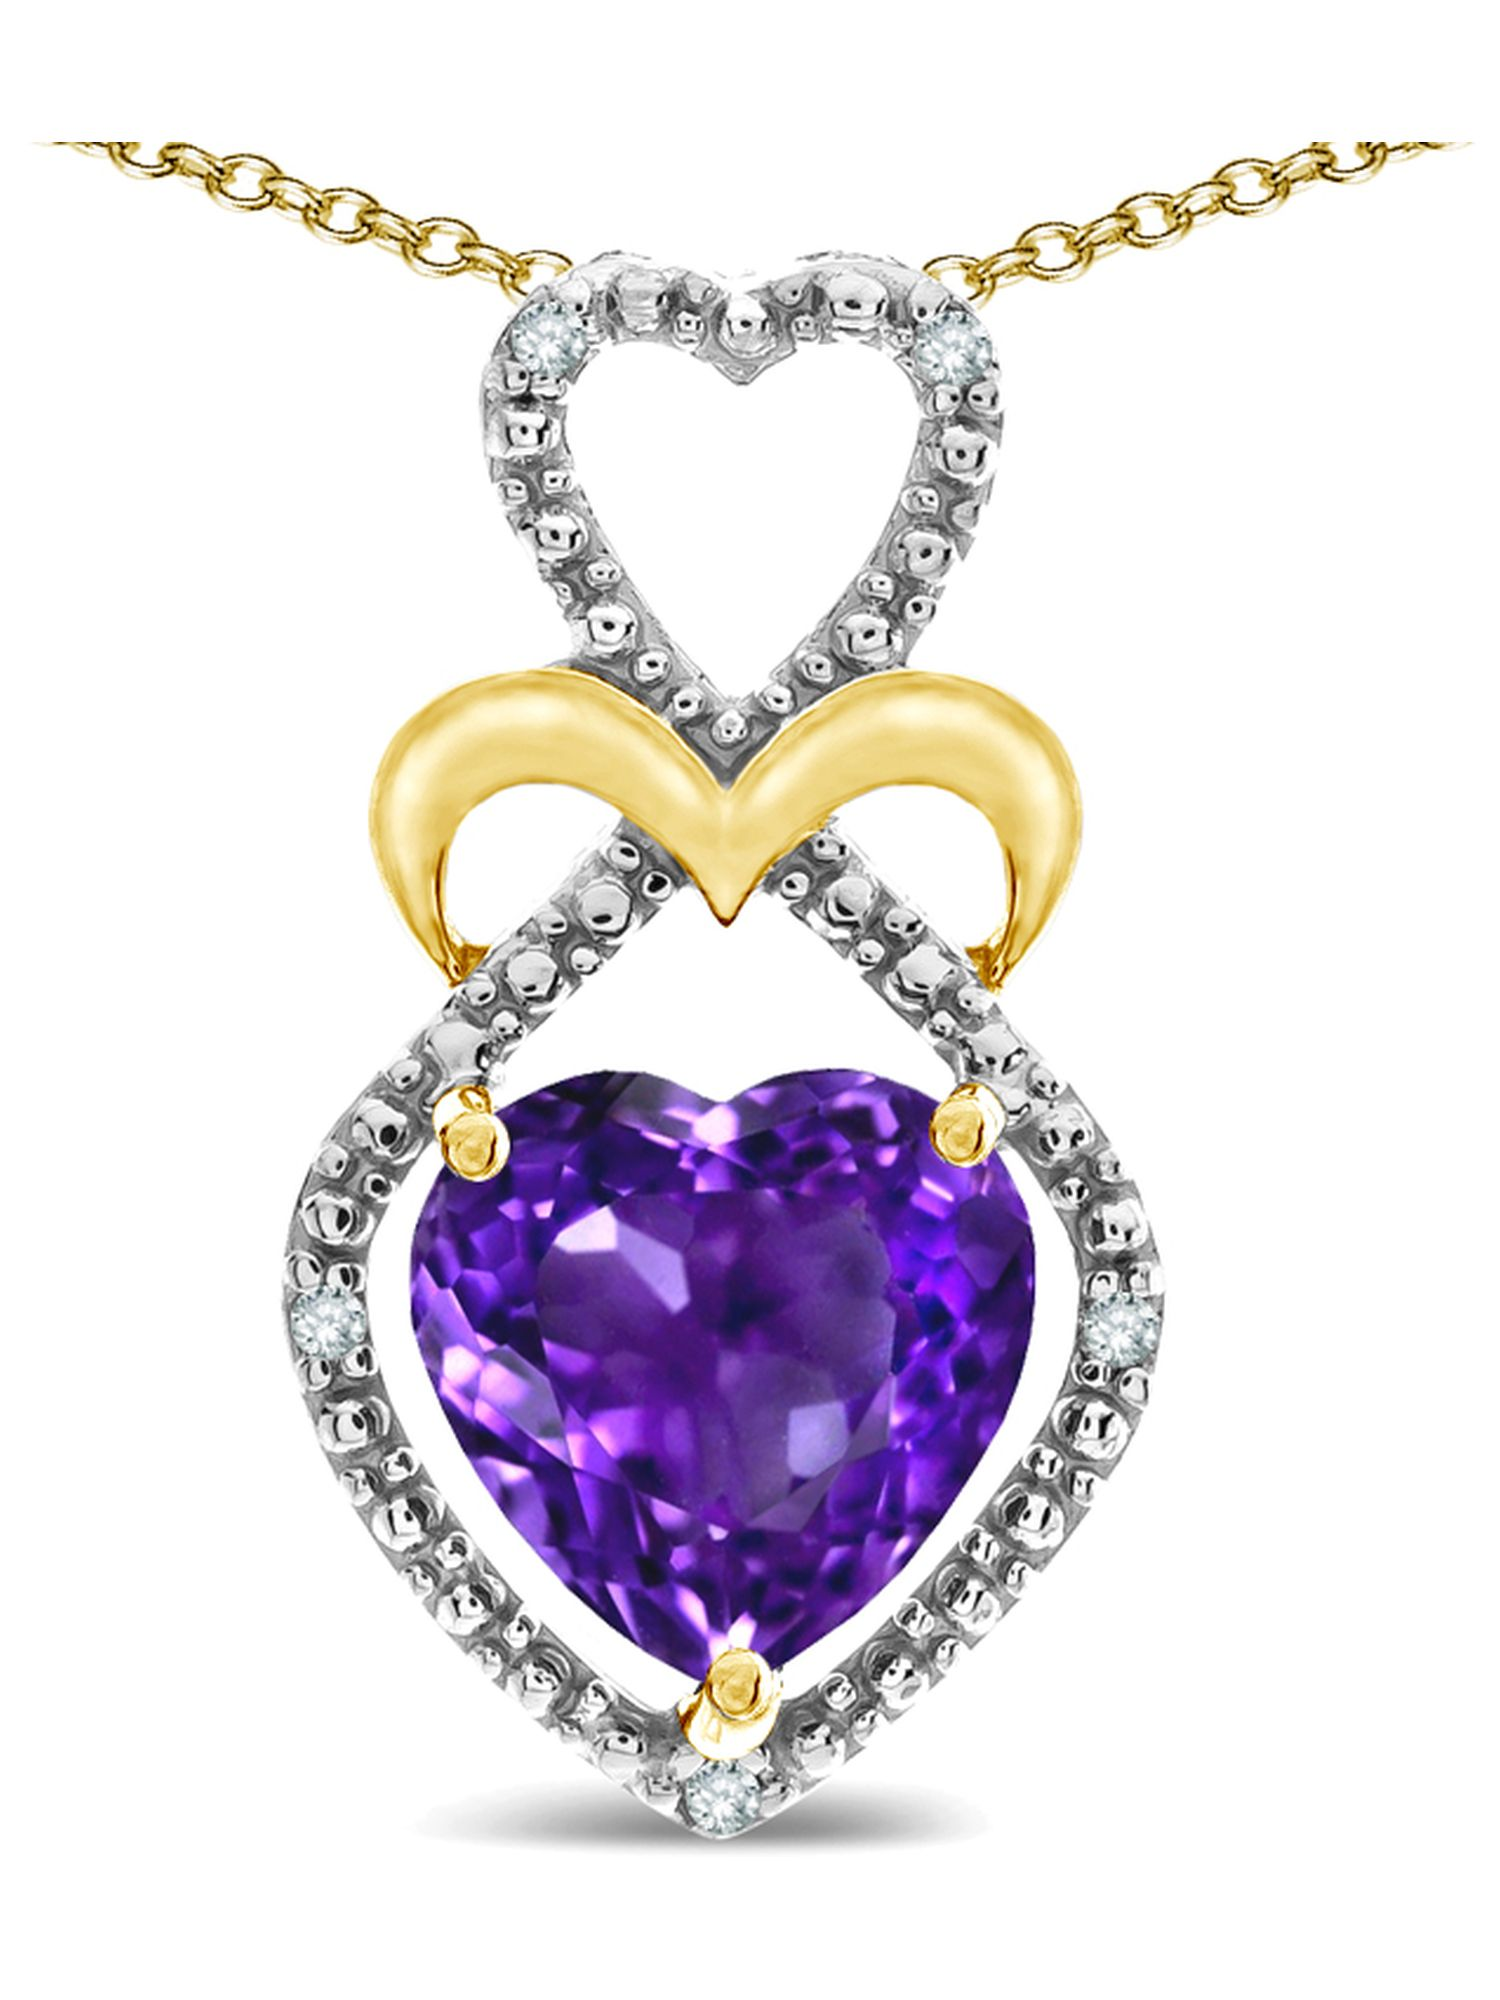 Star K Heart Shape 8mm Genuine Amethyst Heart Halo Embrace Pendant Necklace 10k Yellow Gold with Rhodium Finish